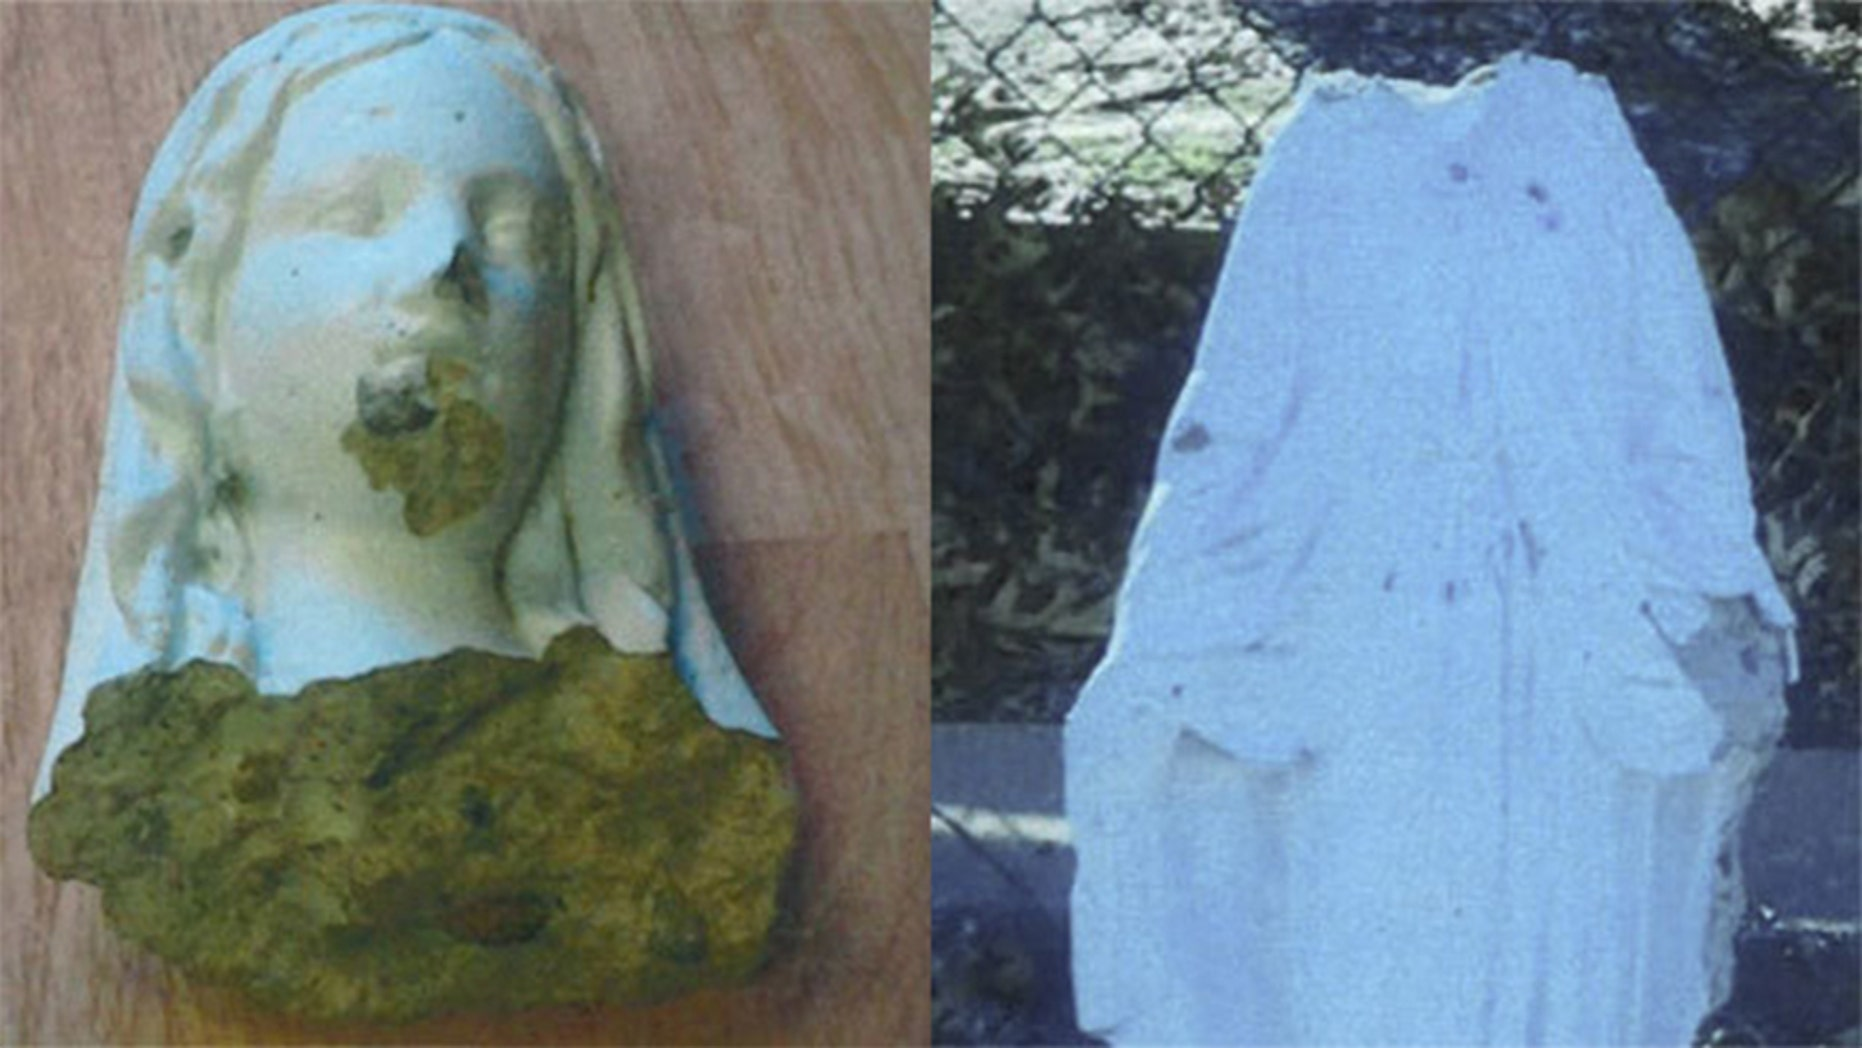 The smashing of a Virgin Mary statue outside a church in New York is being looked at as a hate crime.